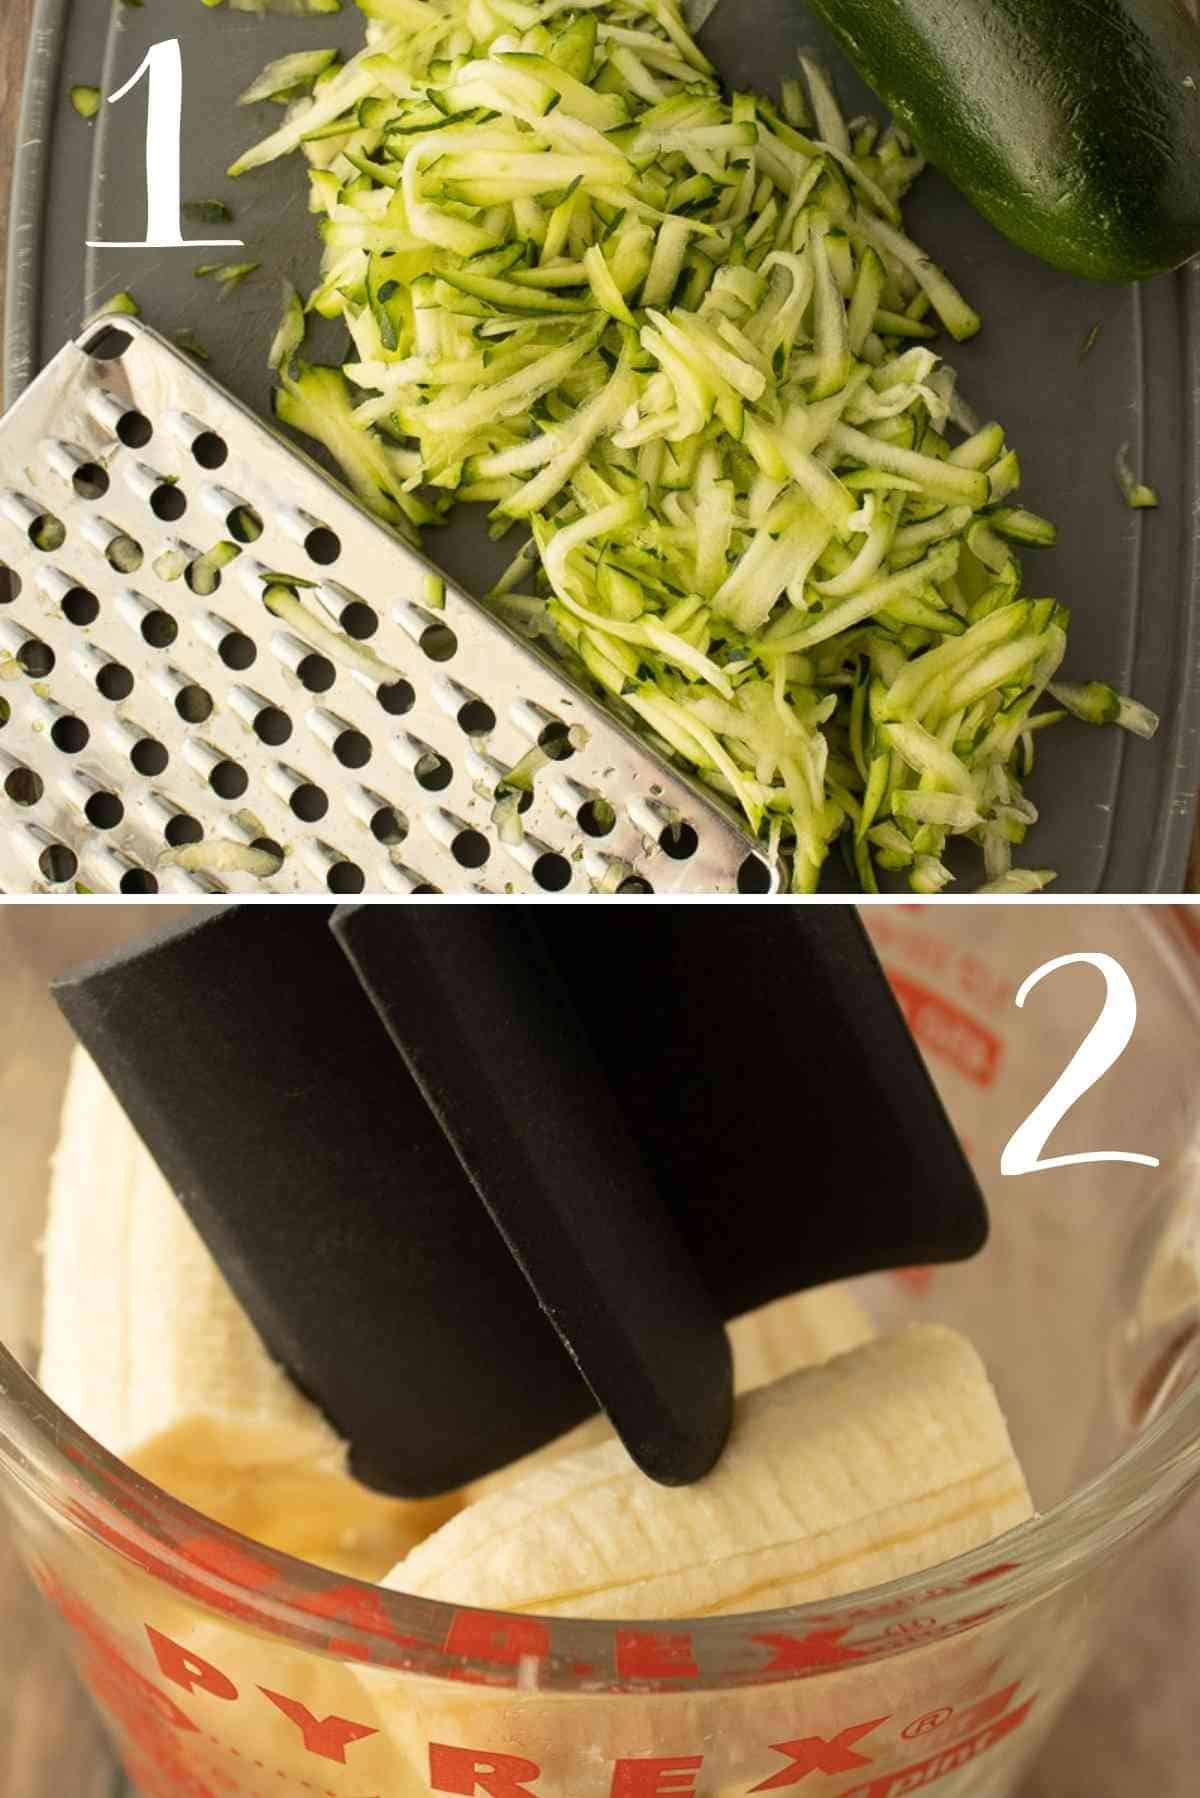 Grate the zucchini and mash the bananas.